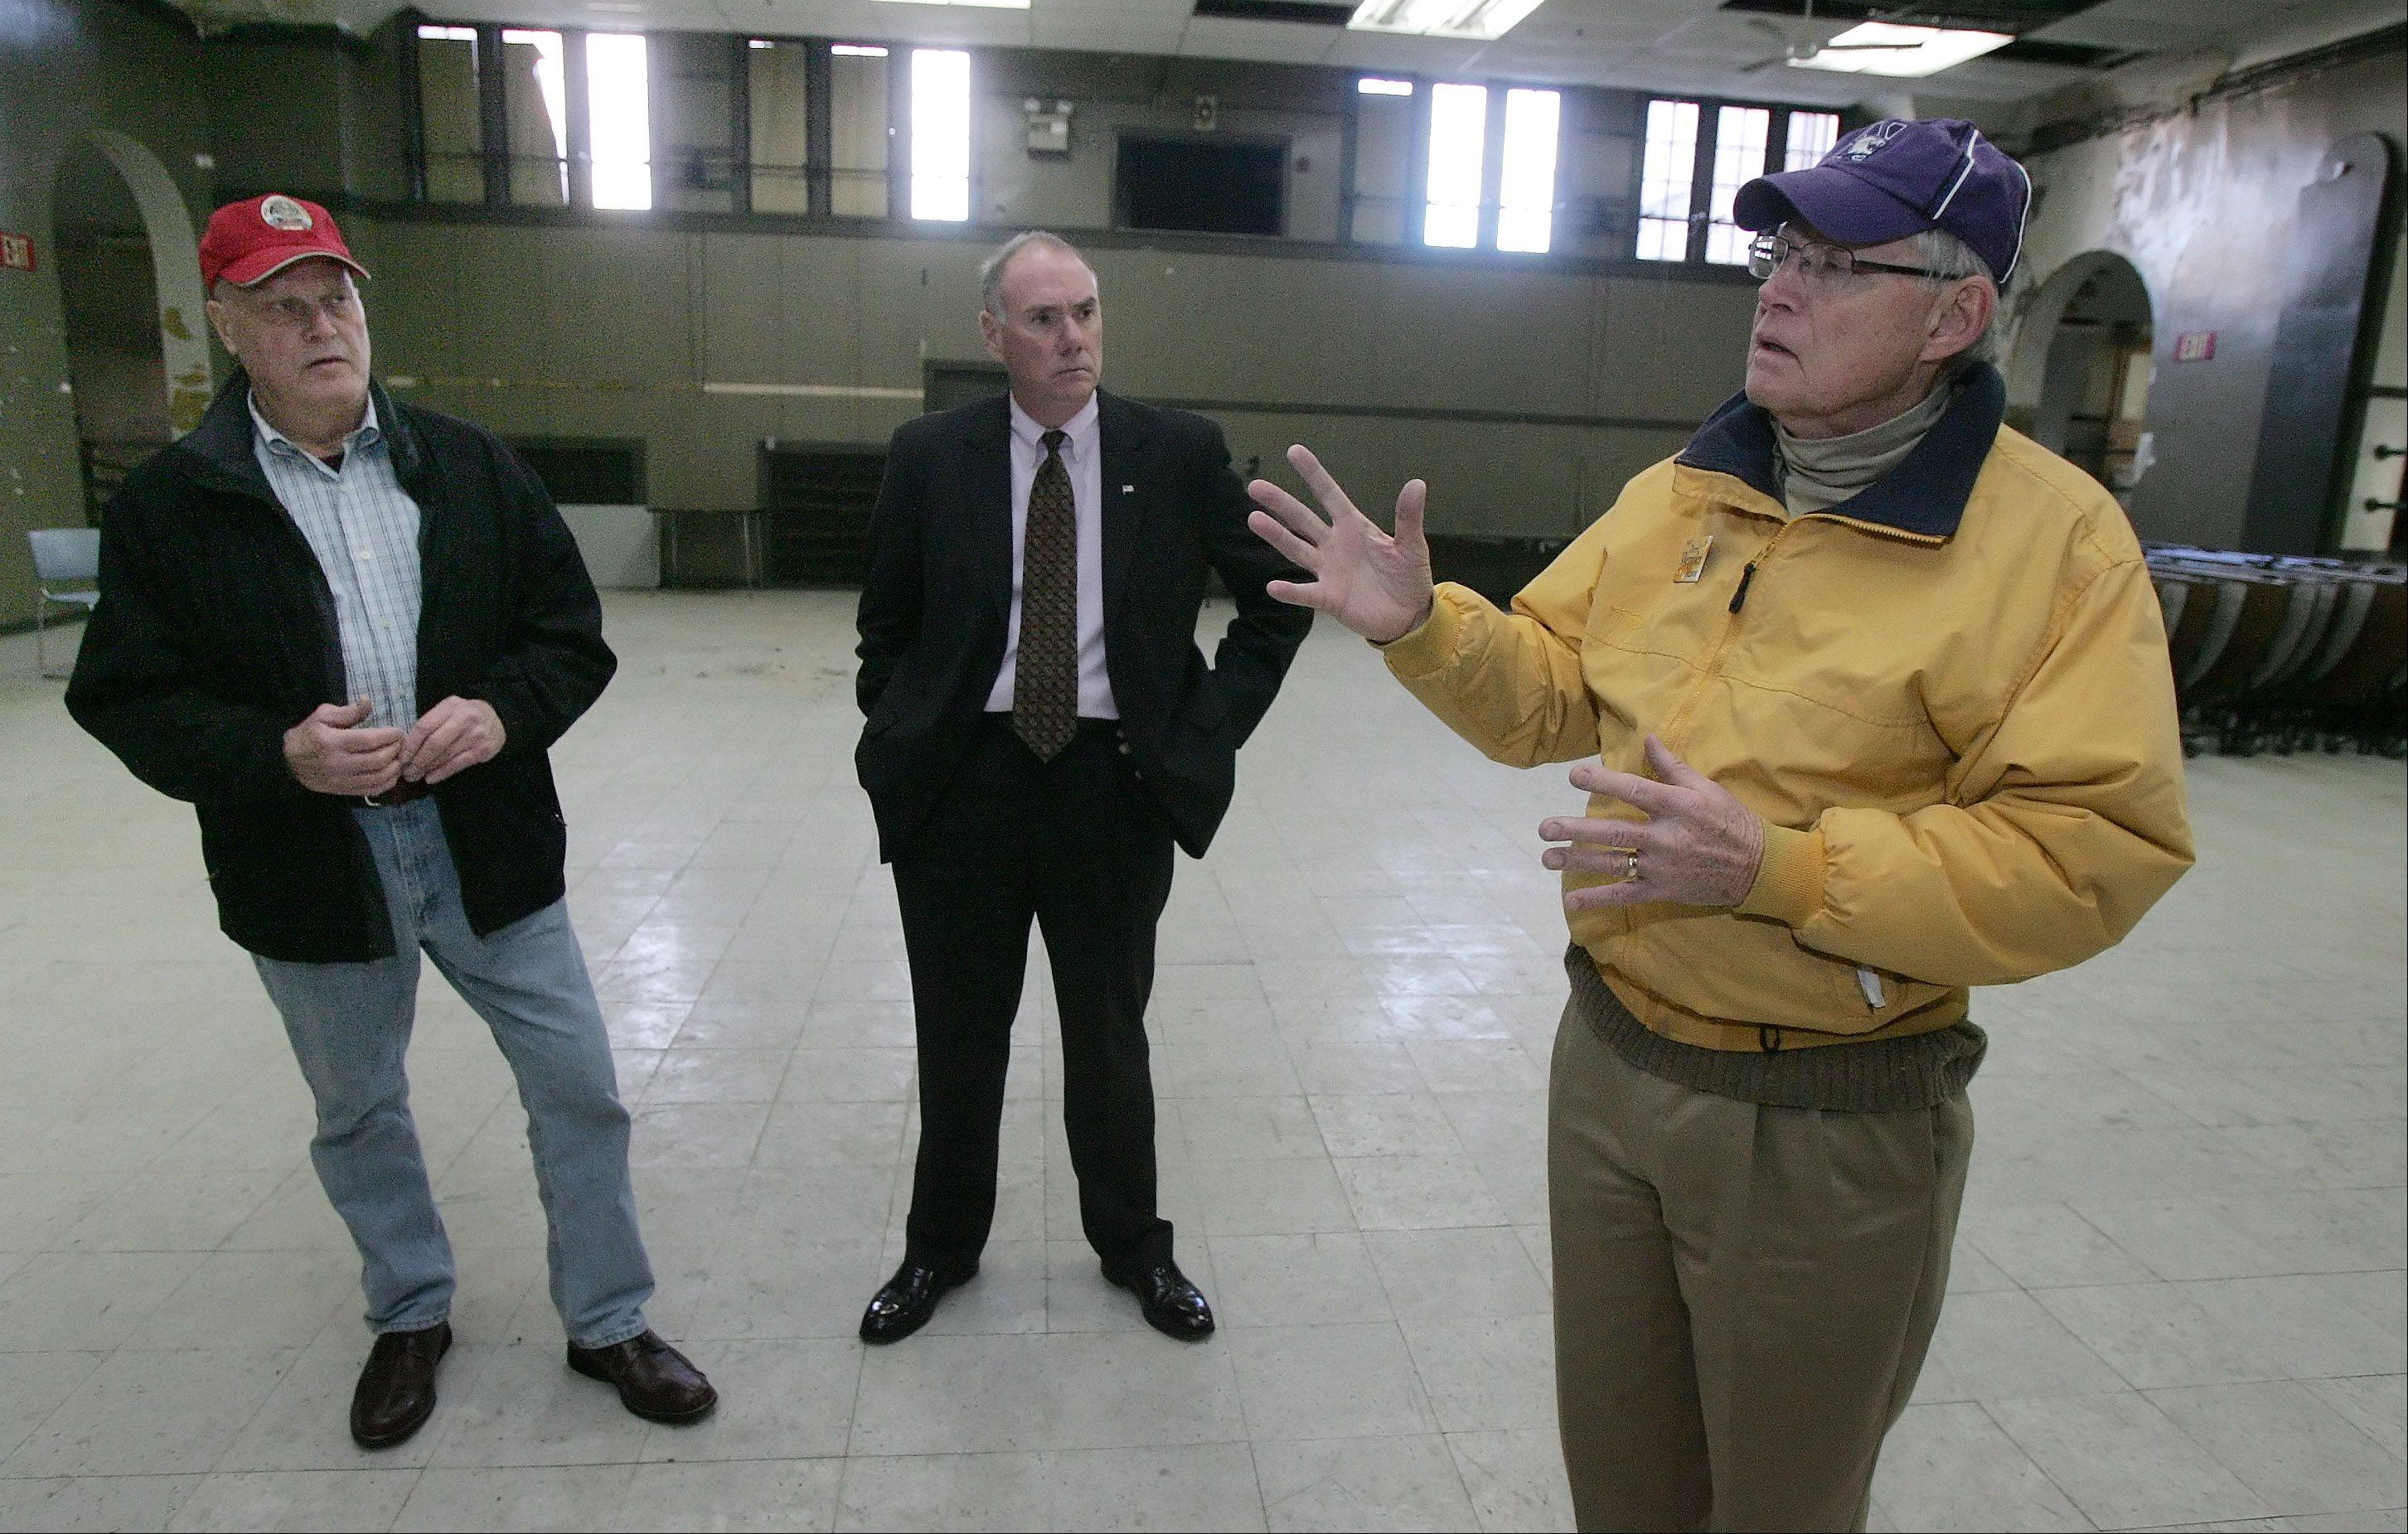 John Snow, right, Scott Adams and Walt Oakley, of the Brainerd Community Center Inc., discuss plans to gauge voter support of a property tax increase to revive the 1916 former high school building for a variety of activities.